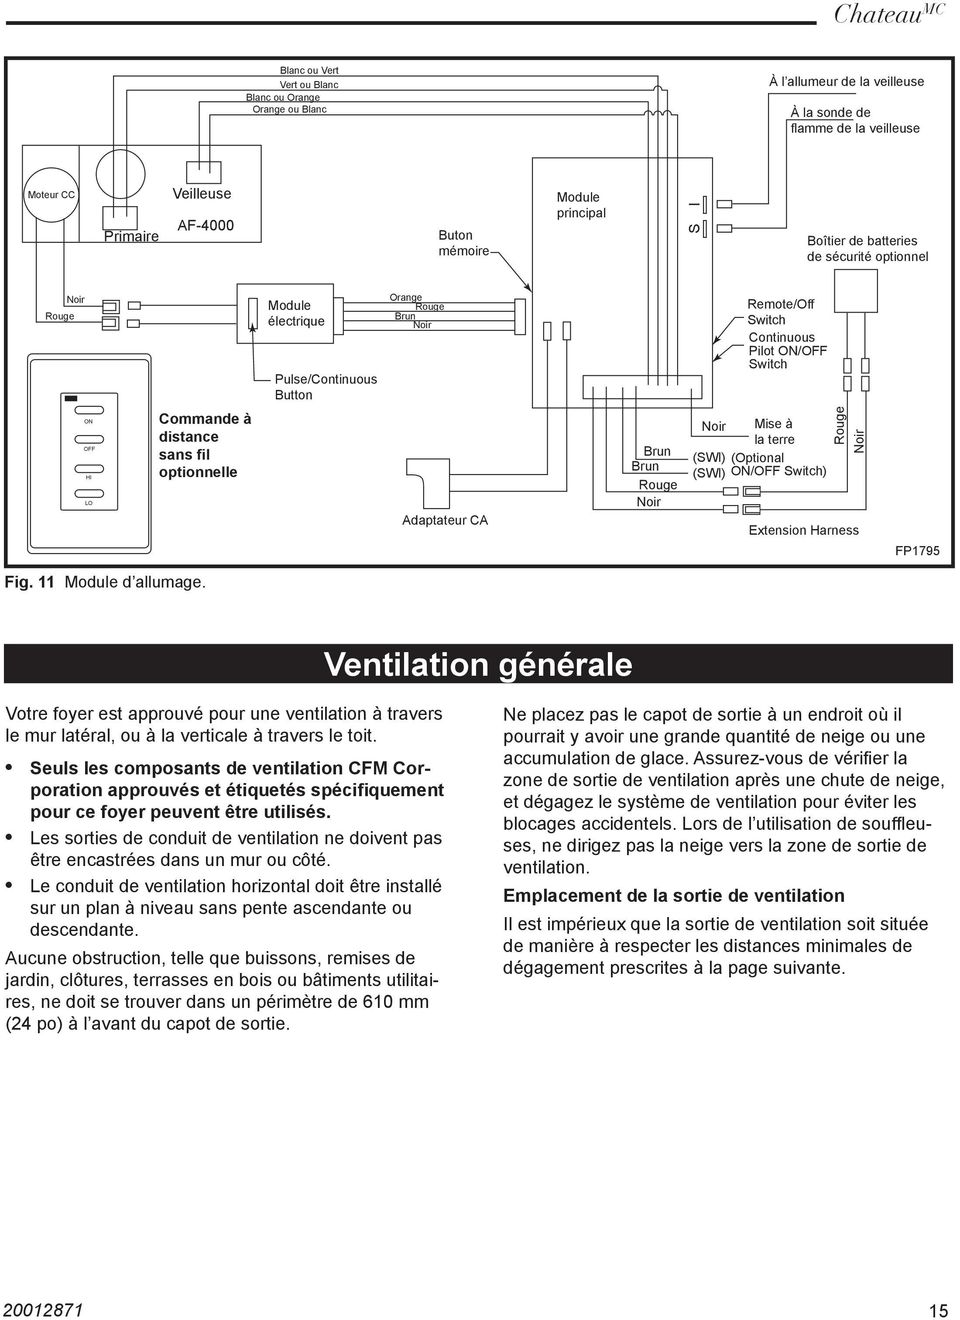 distance sans fil optionnelle Adaptateur CA Brun Brun Rouge Noir Noir (SWI) (SWI) Mise à la terre (Optional ON/OFF Switch) Rouge Noir Extension Harness FP1795 Fig. 11 Module d allumage.